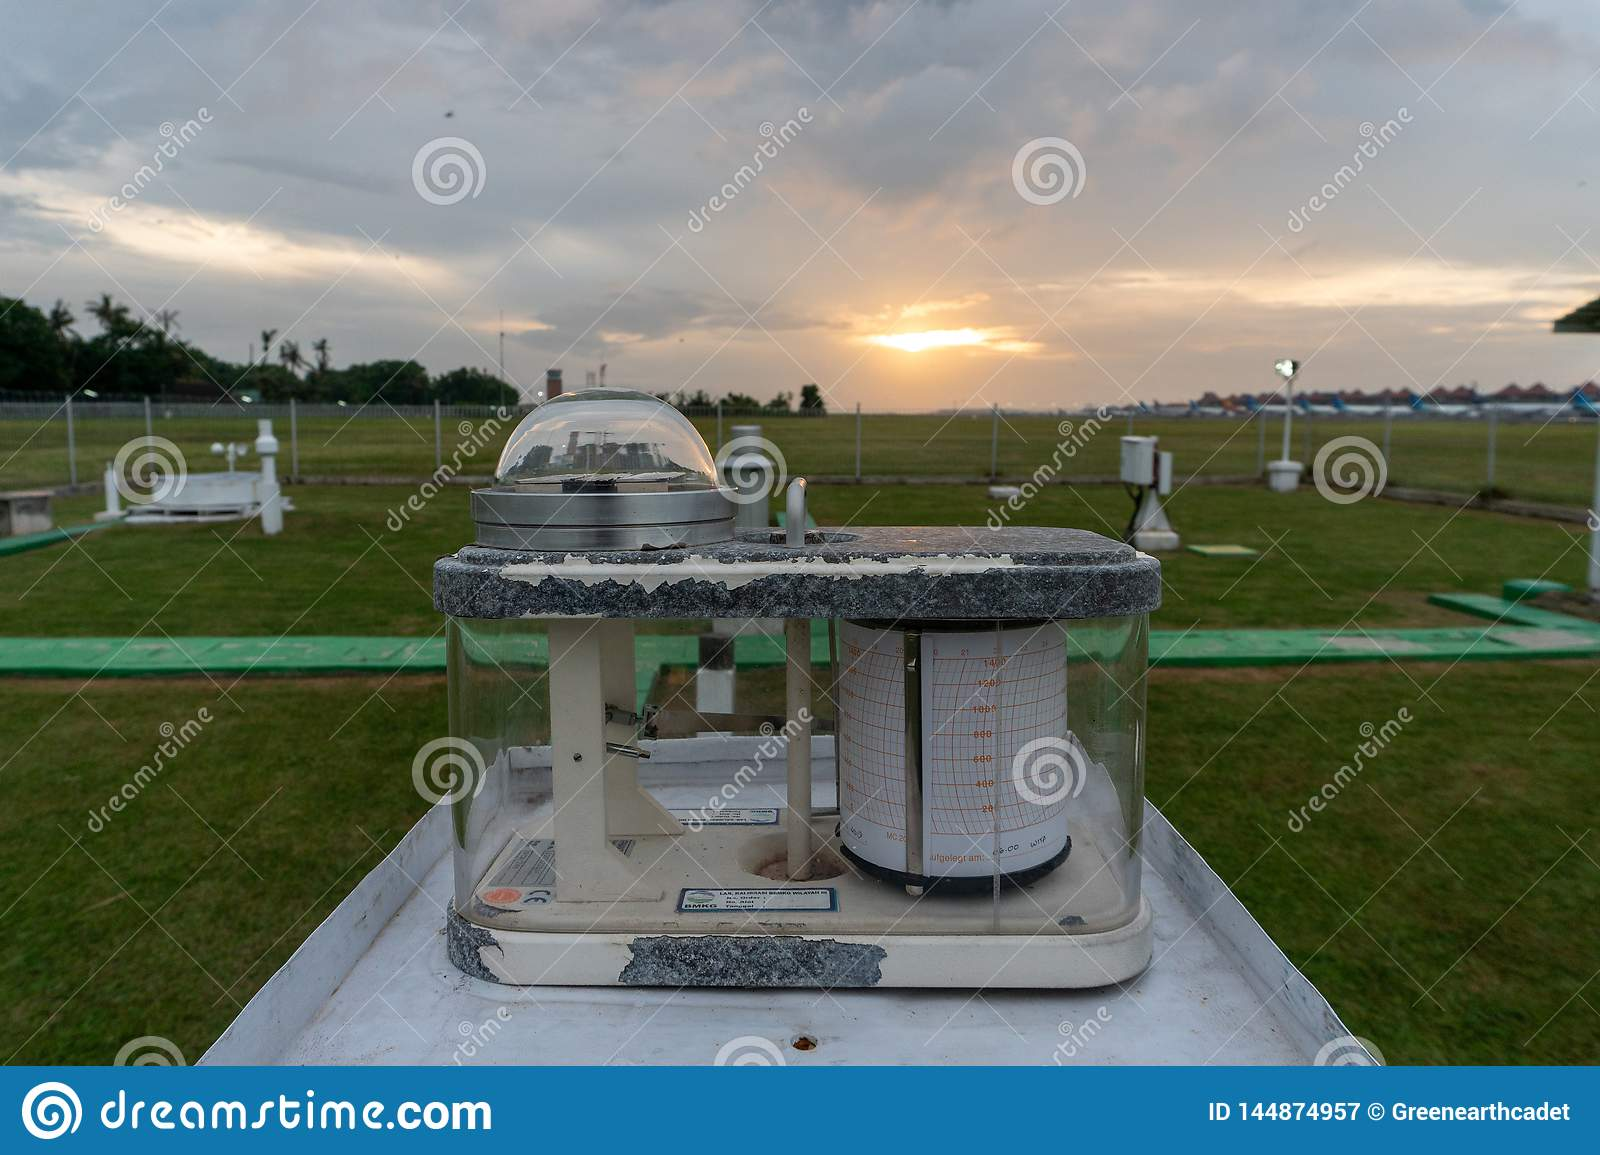 Pyranograph at meteorology field with green grass and when sunset under cloudy sky